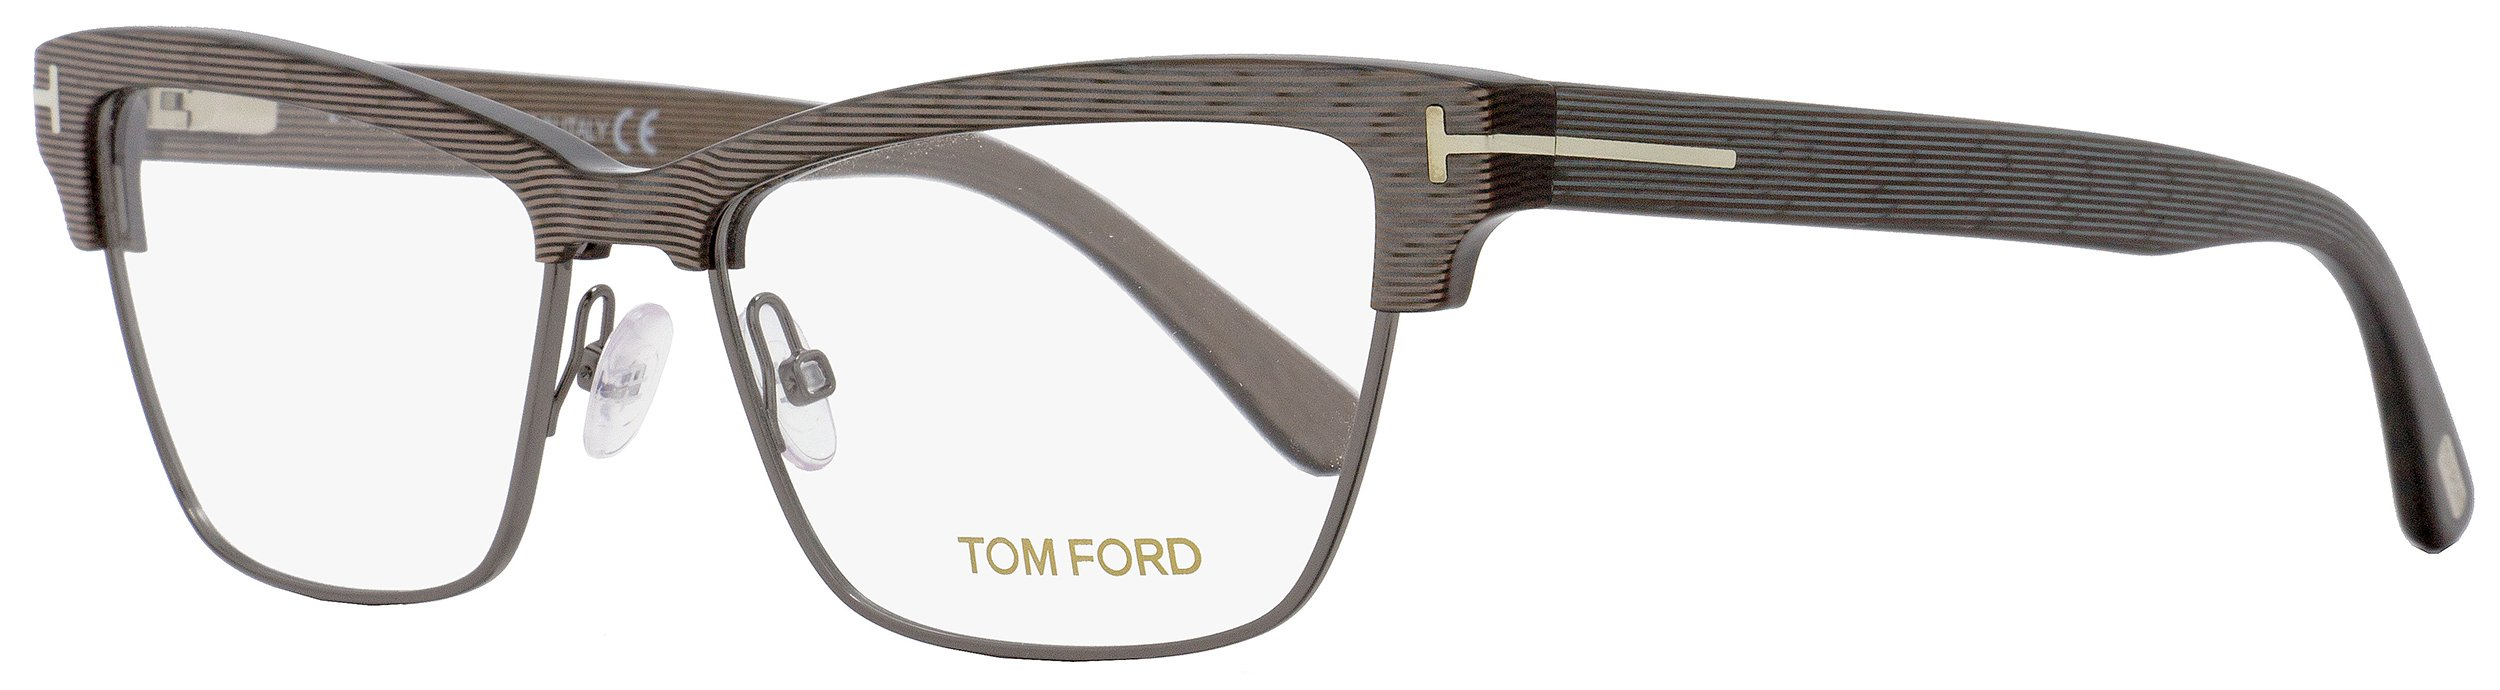 Eyeglasses Tom Ford TF 5364 FT5364 020 grey/other